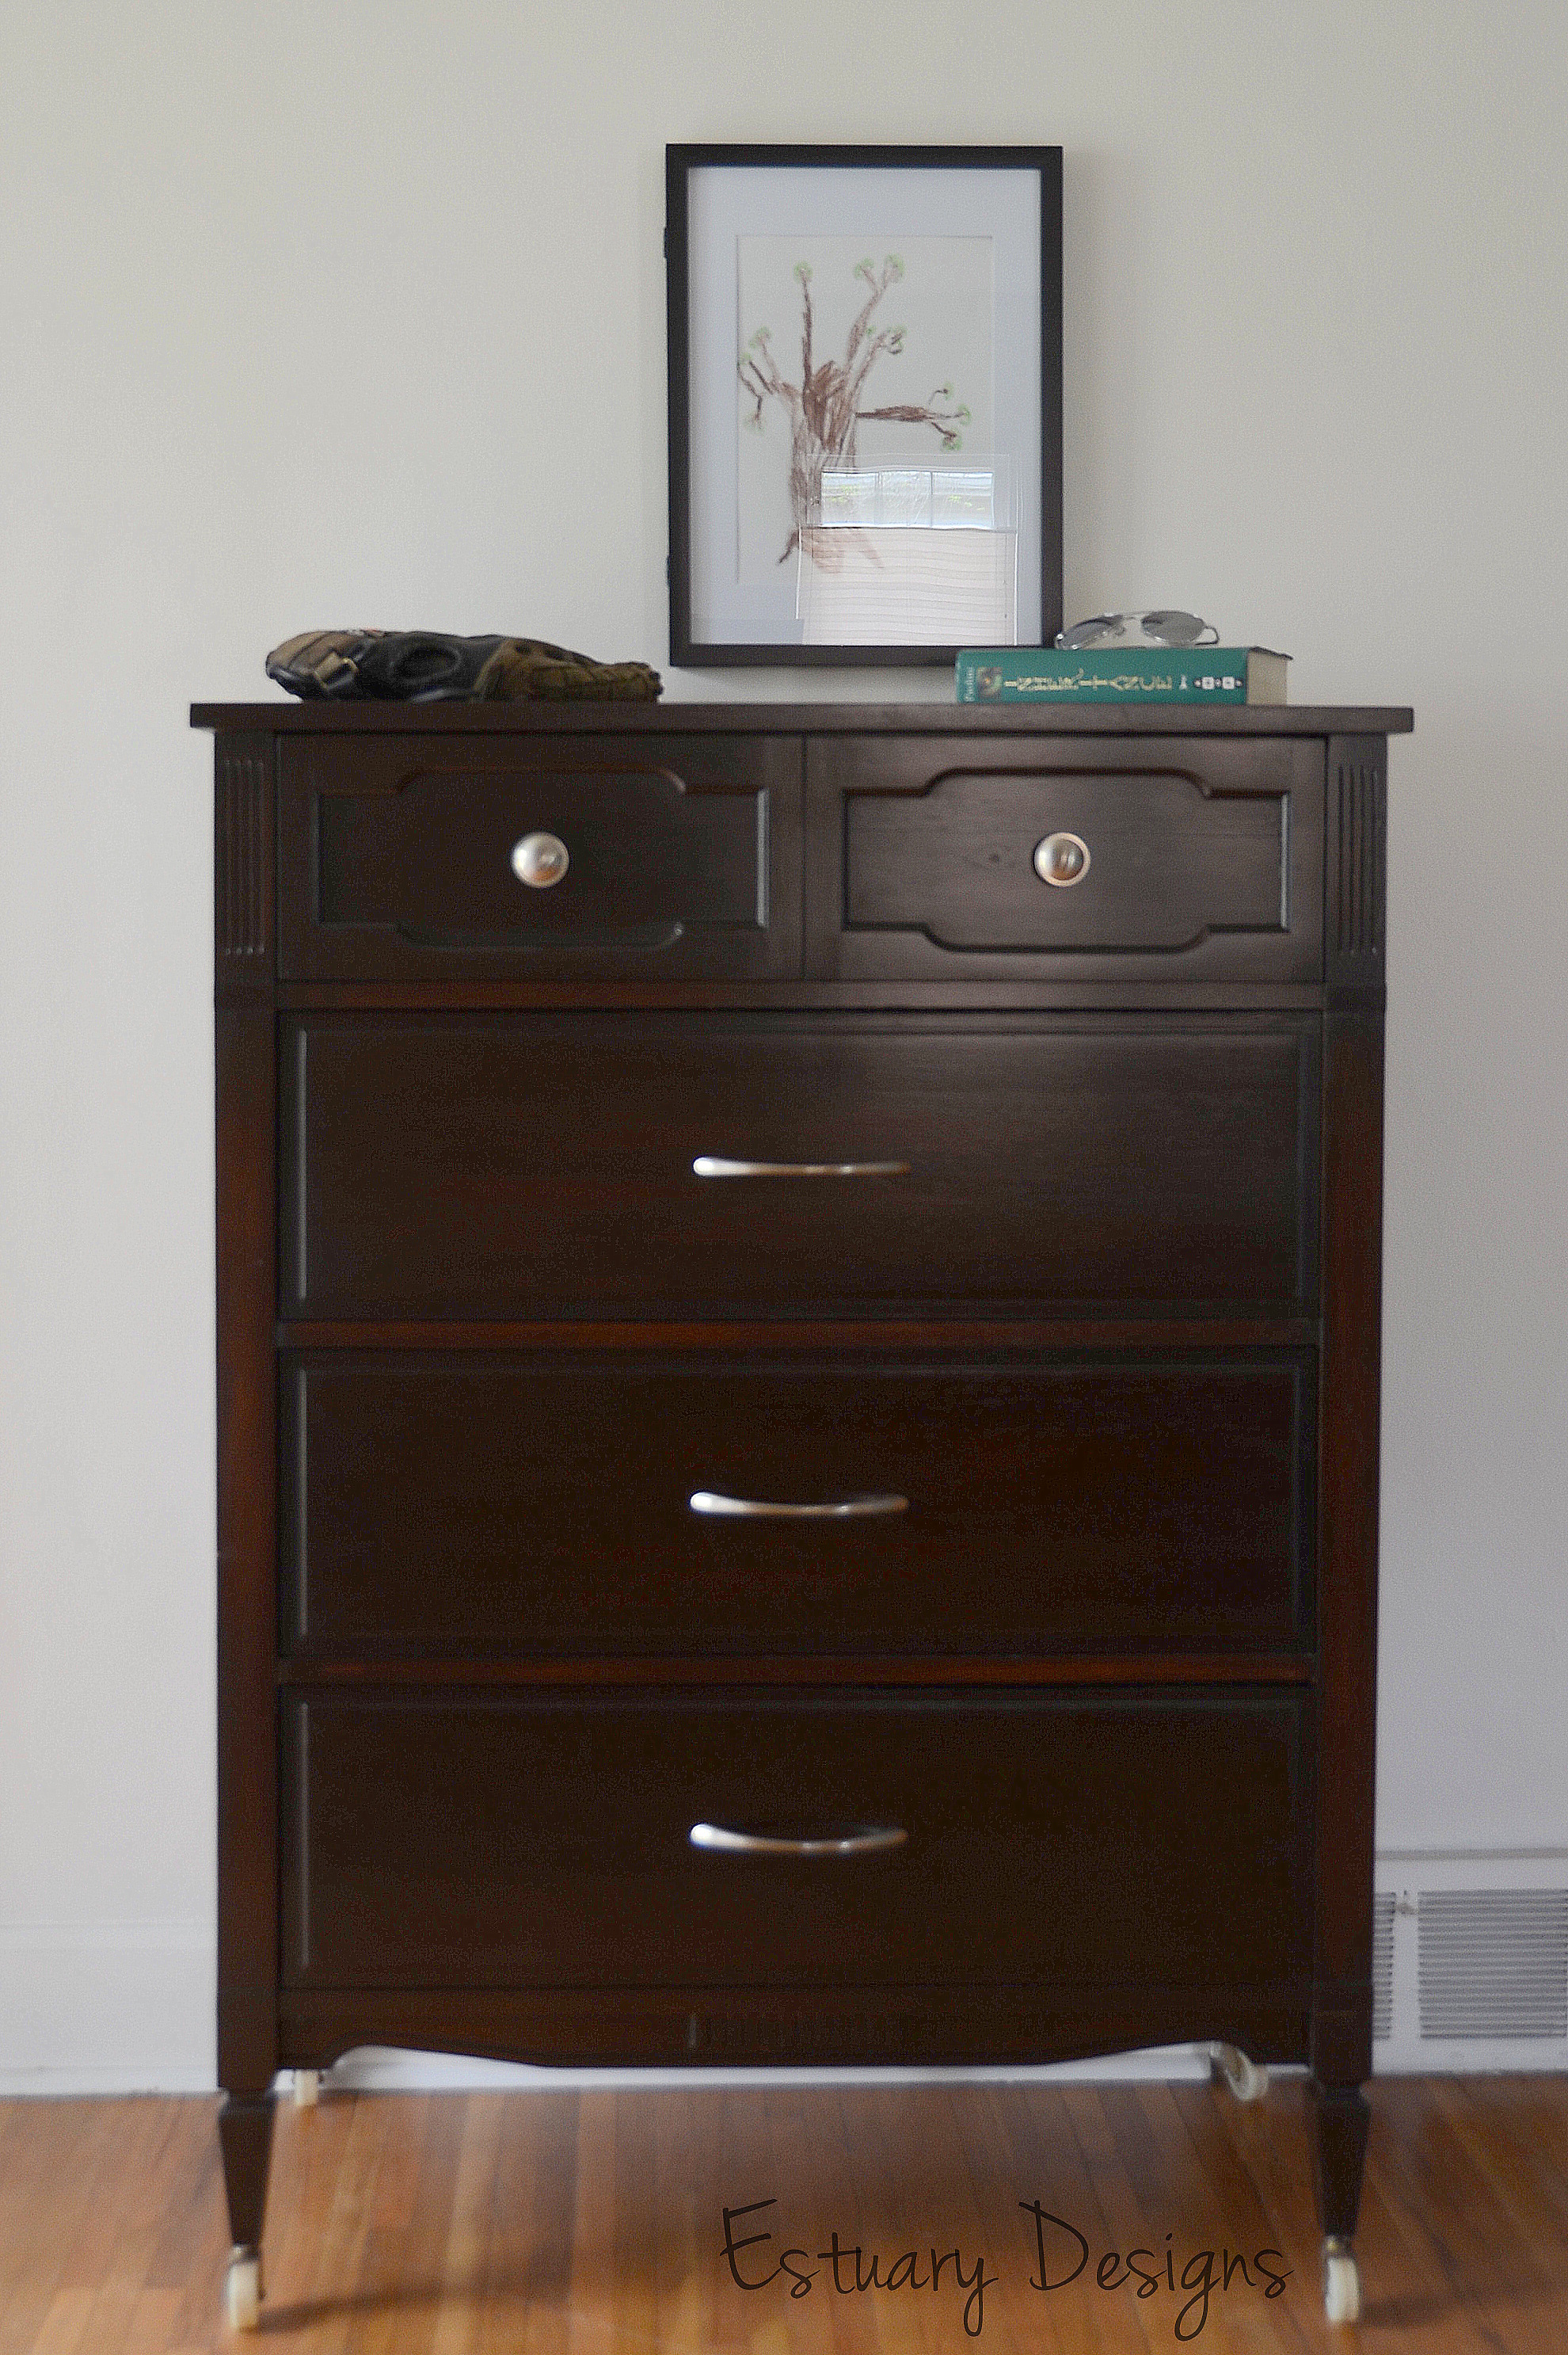 Staining Bedroom Furniture Espresso Stain Archives Estuary Designs